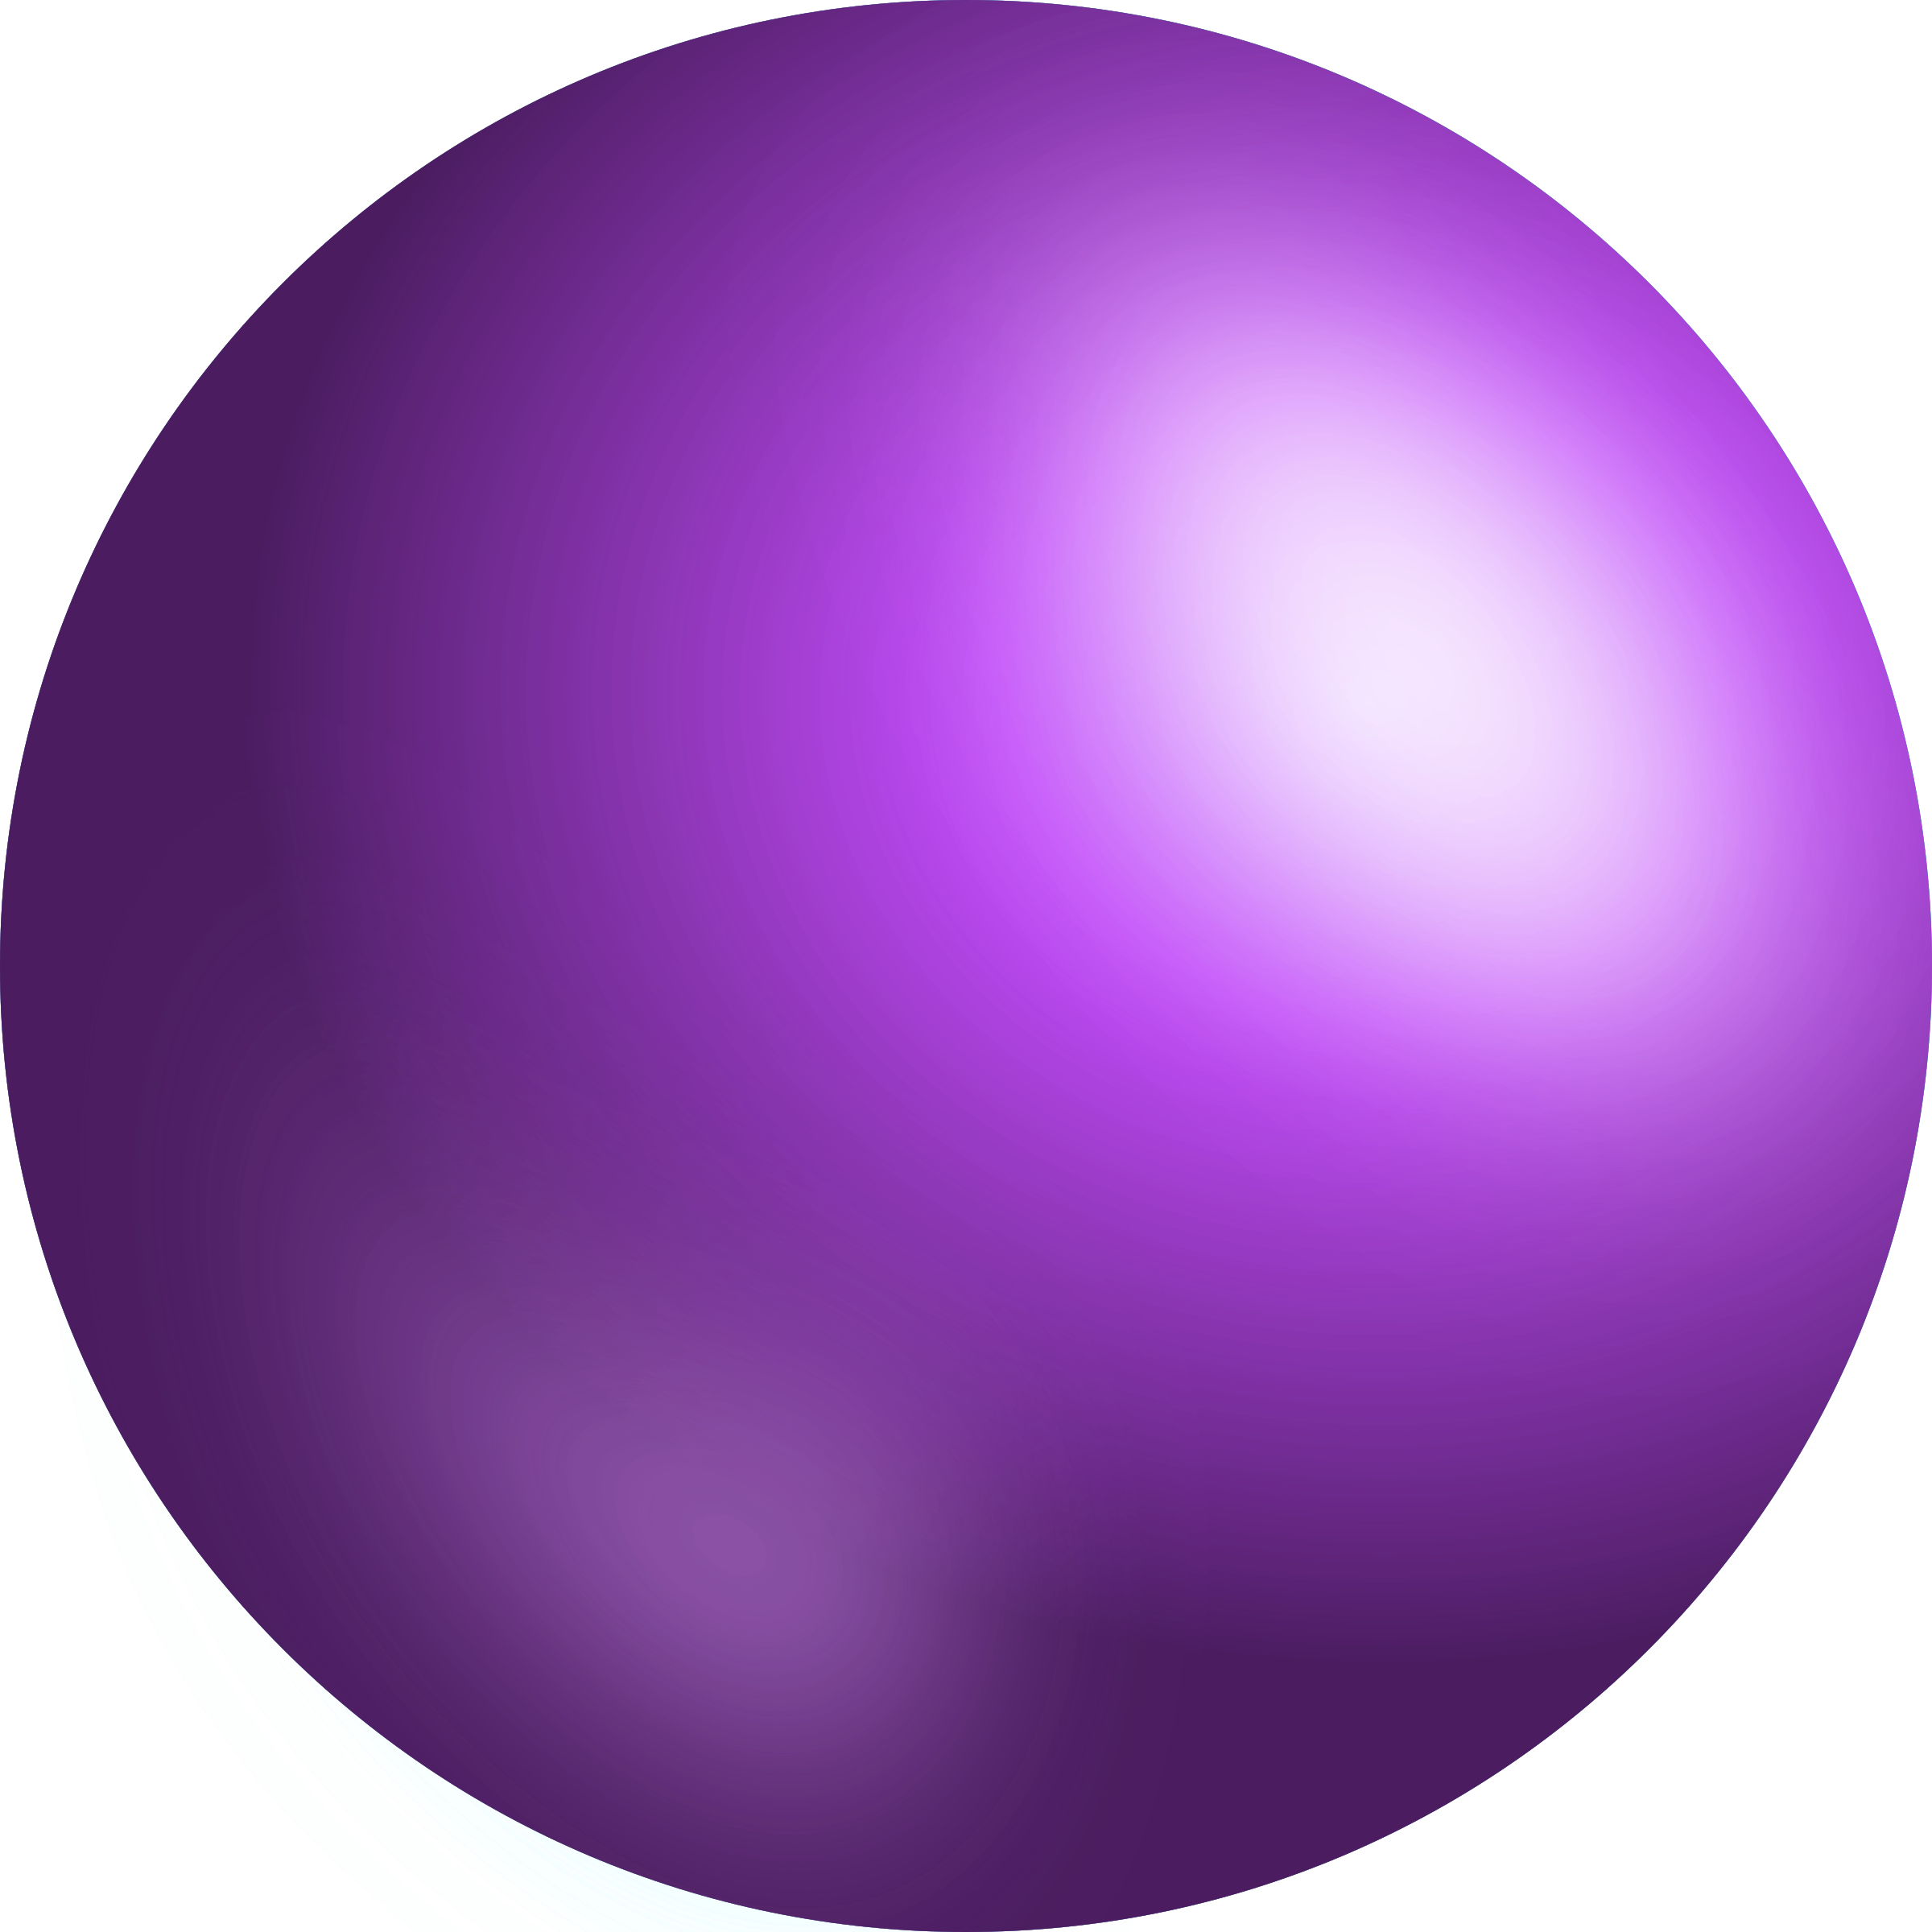 Violet,Purple,Sphere,Lilac,Circle,Ball,Ball,Magenta,Material.